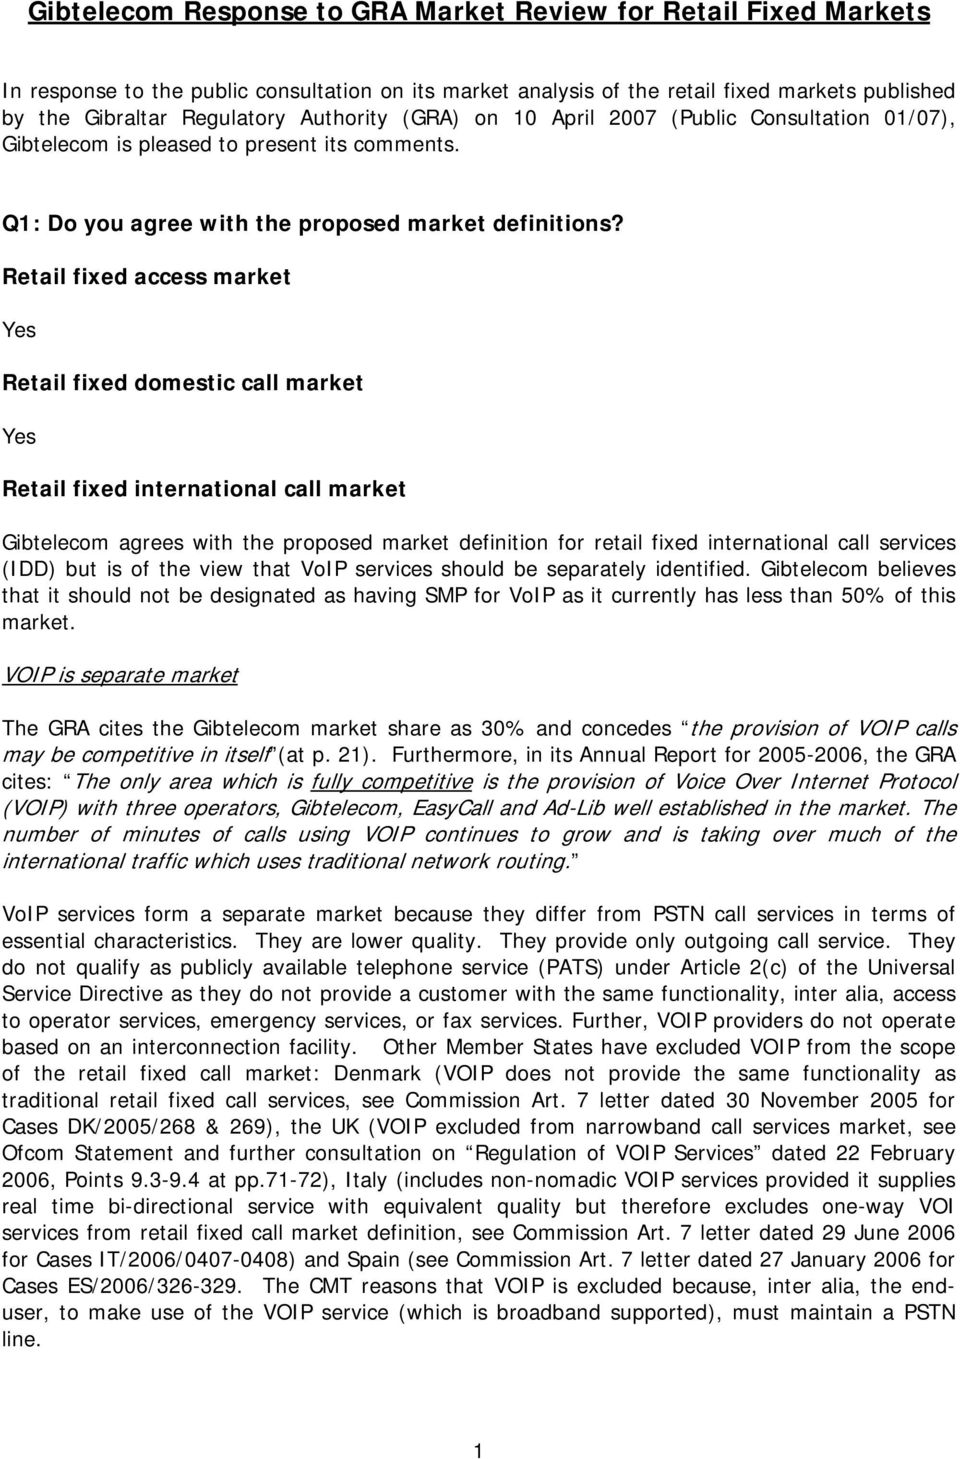 Retail fixed access market Yes Retail fixed domestic call market Yes Retail fixed international call market Gibtelecom agrees with the proposed market definition for retail fixed international call